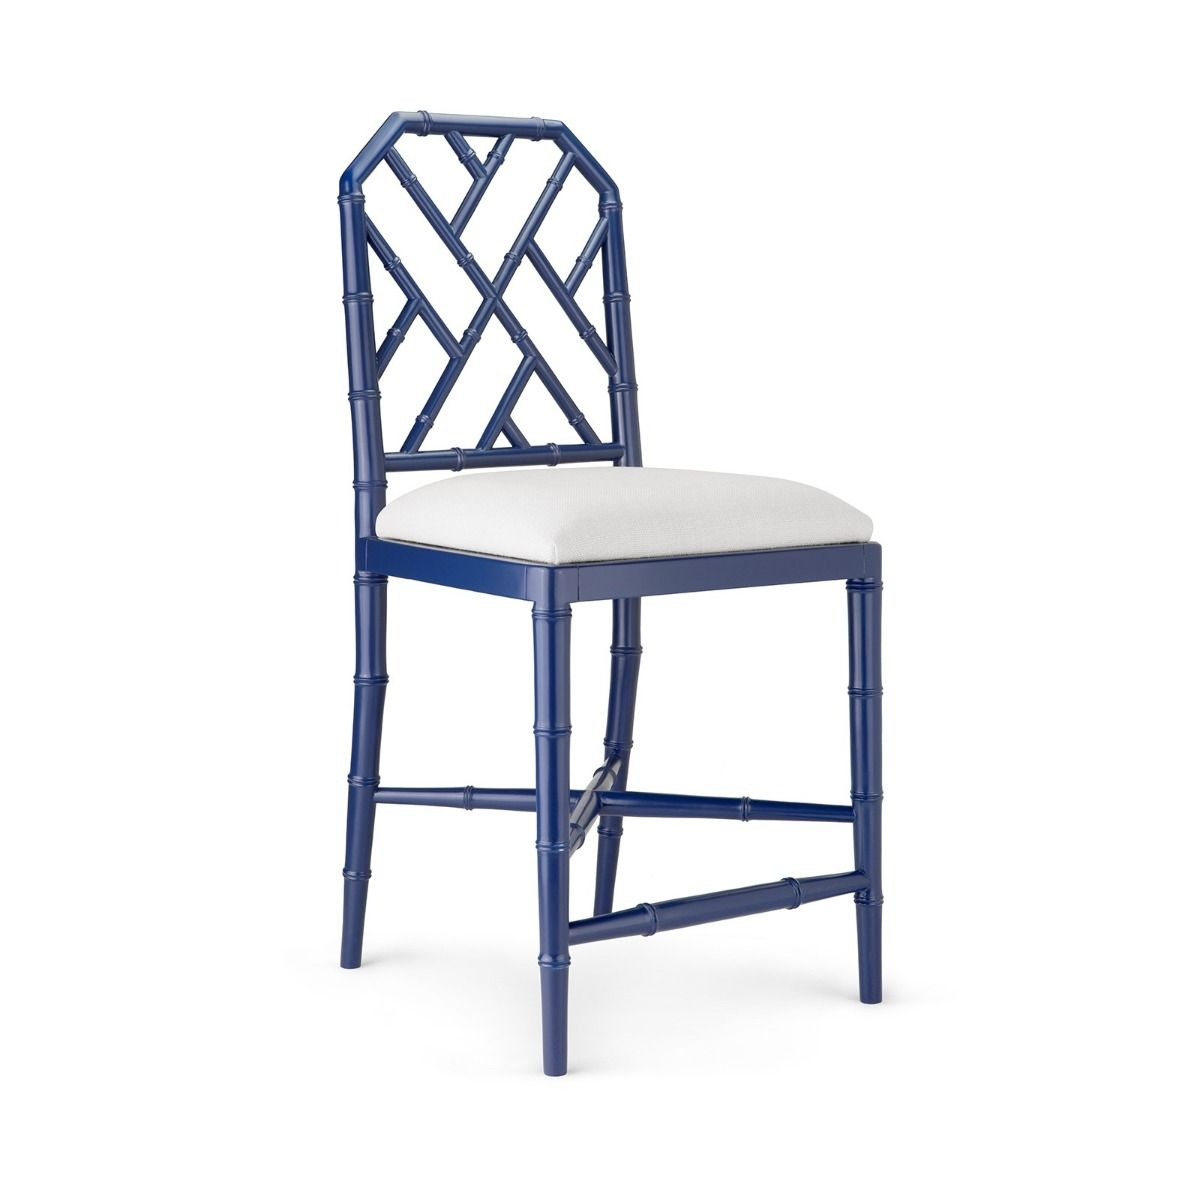 Bungalow 5 - JARDIN COUNTER STOOL, NAVY BLUE